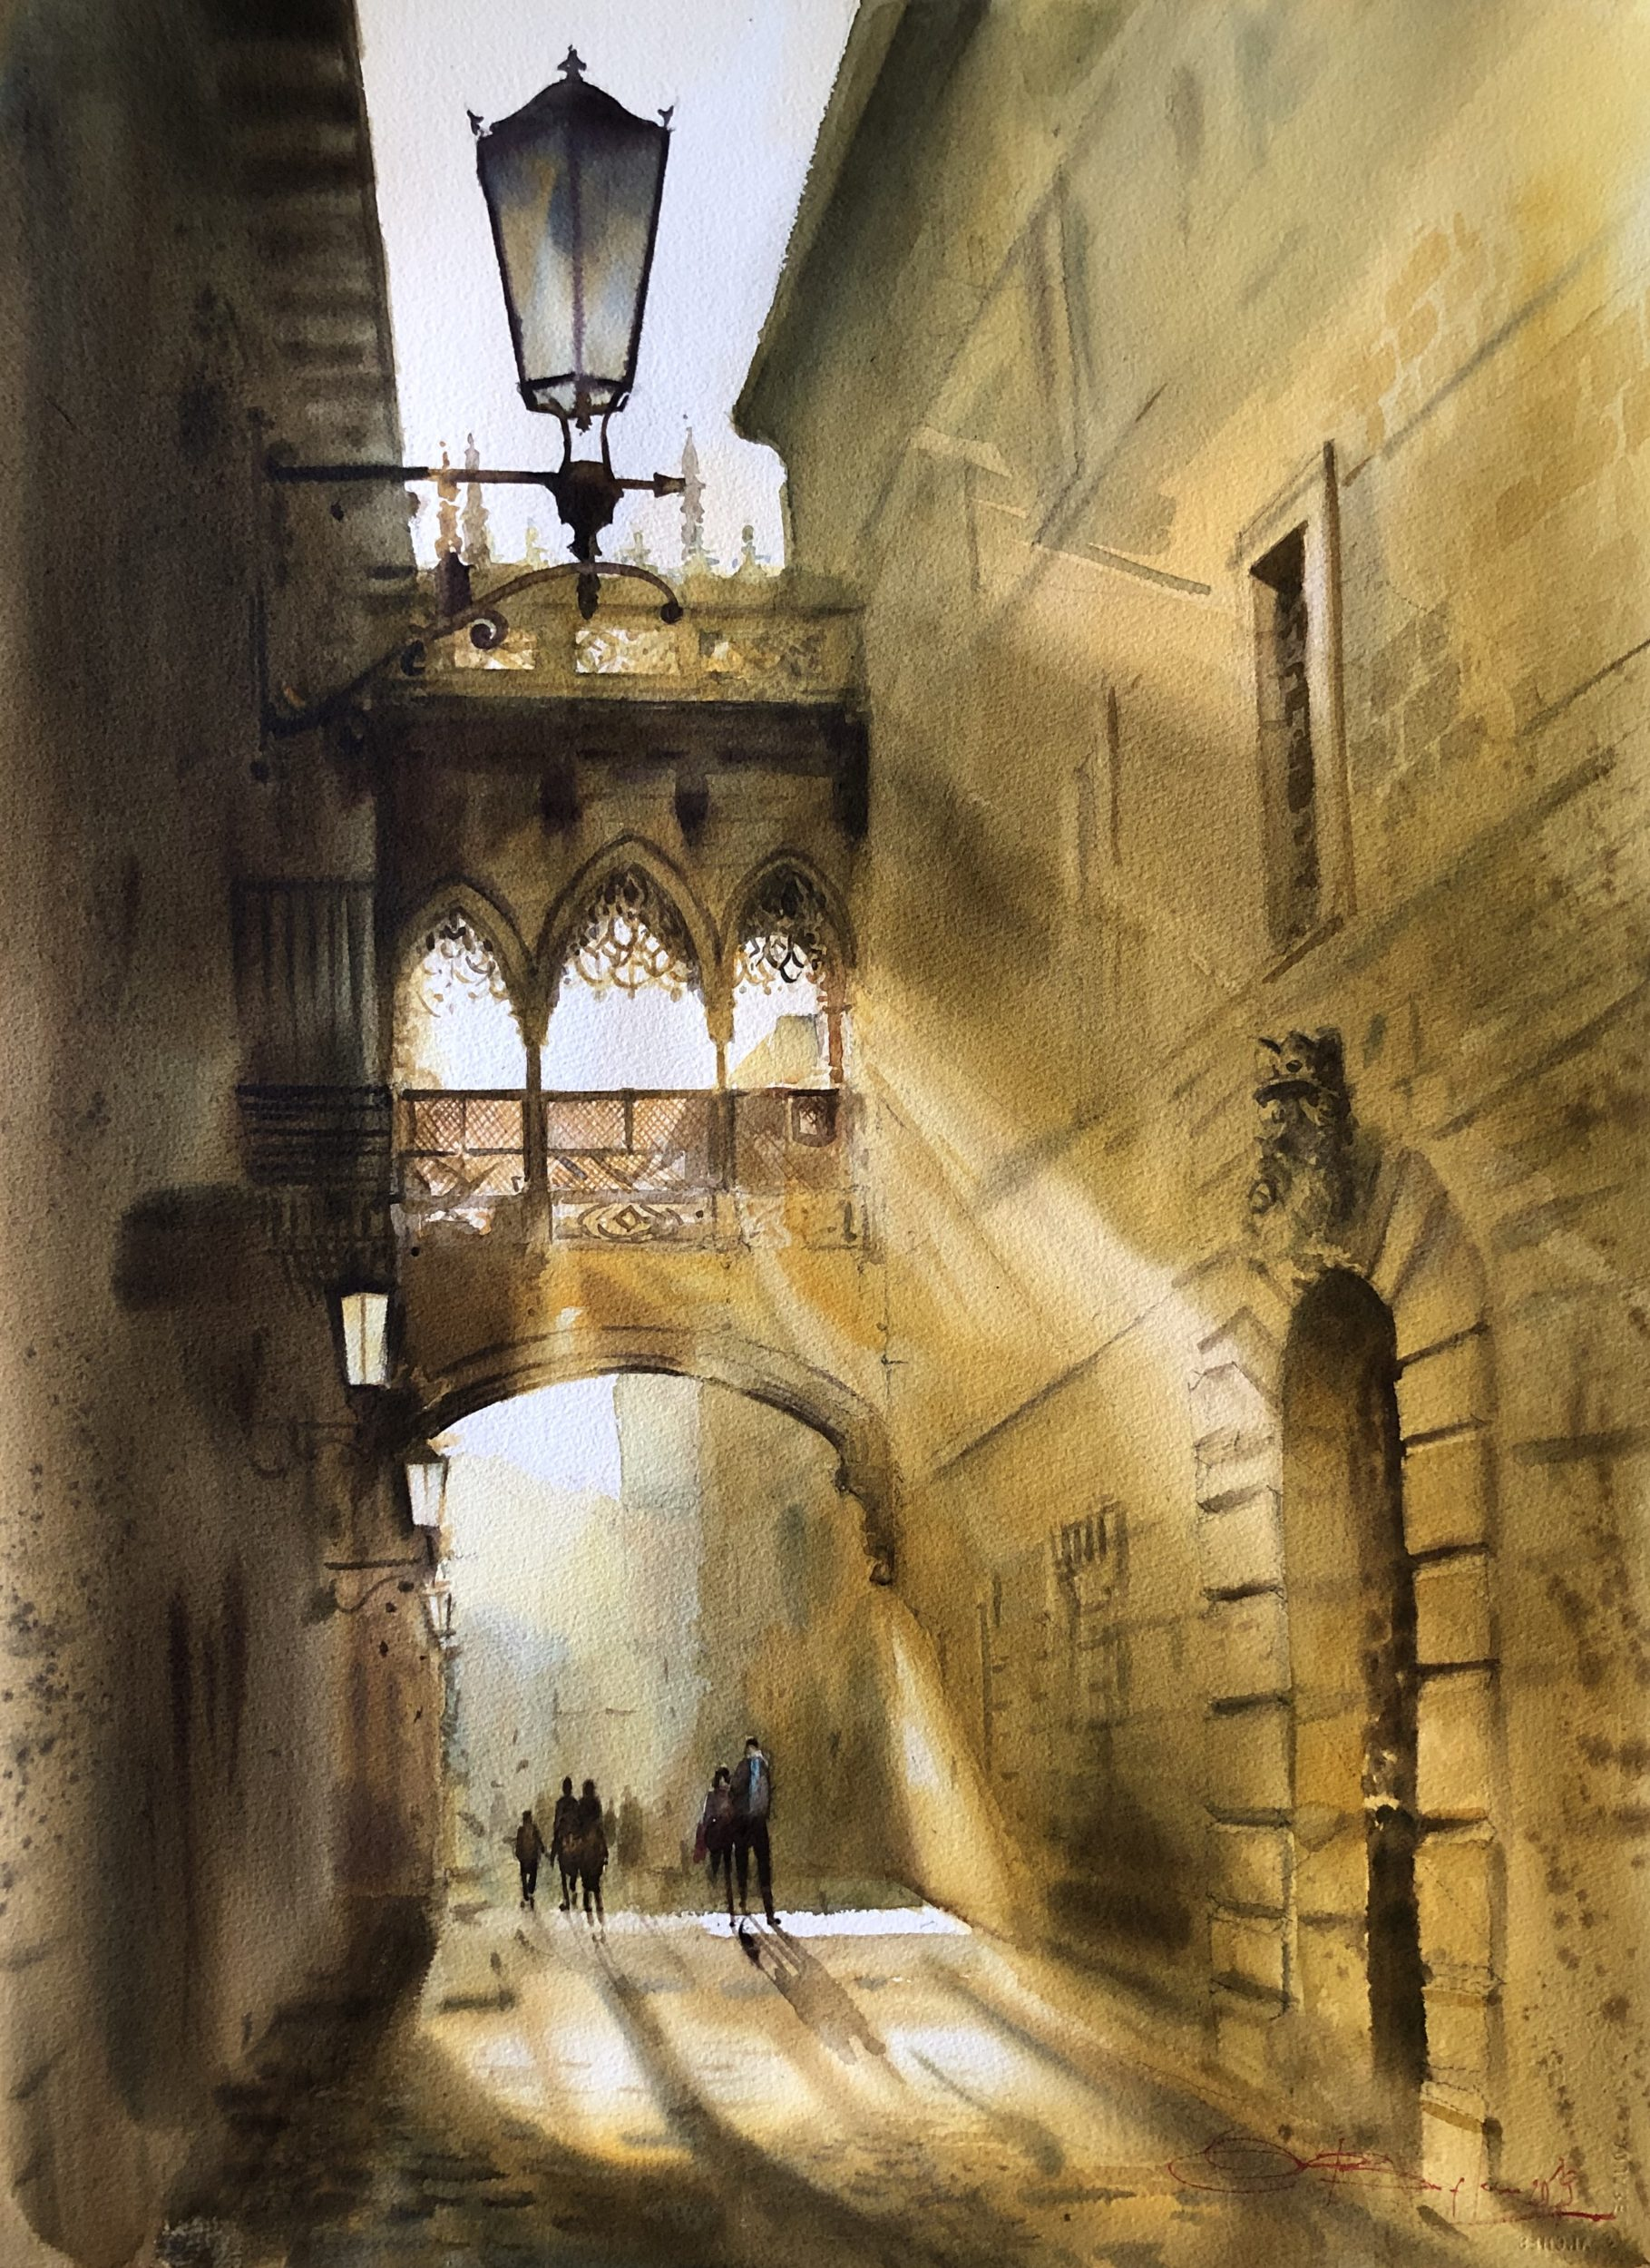 Heavenly Golden Light in the Gothic Barcelona, Watercolour, 56x76cm,Nebeské zlaté světlo v gotické Barceloně